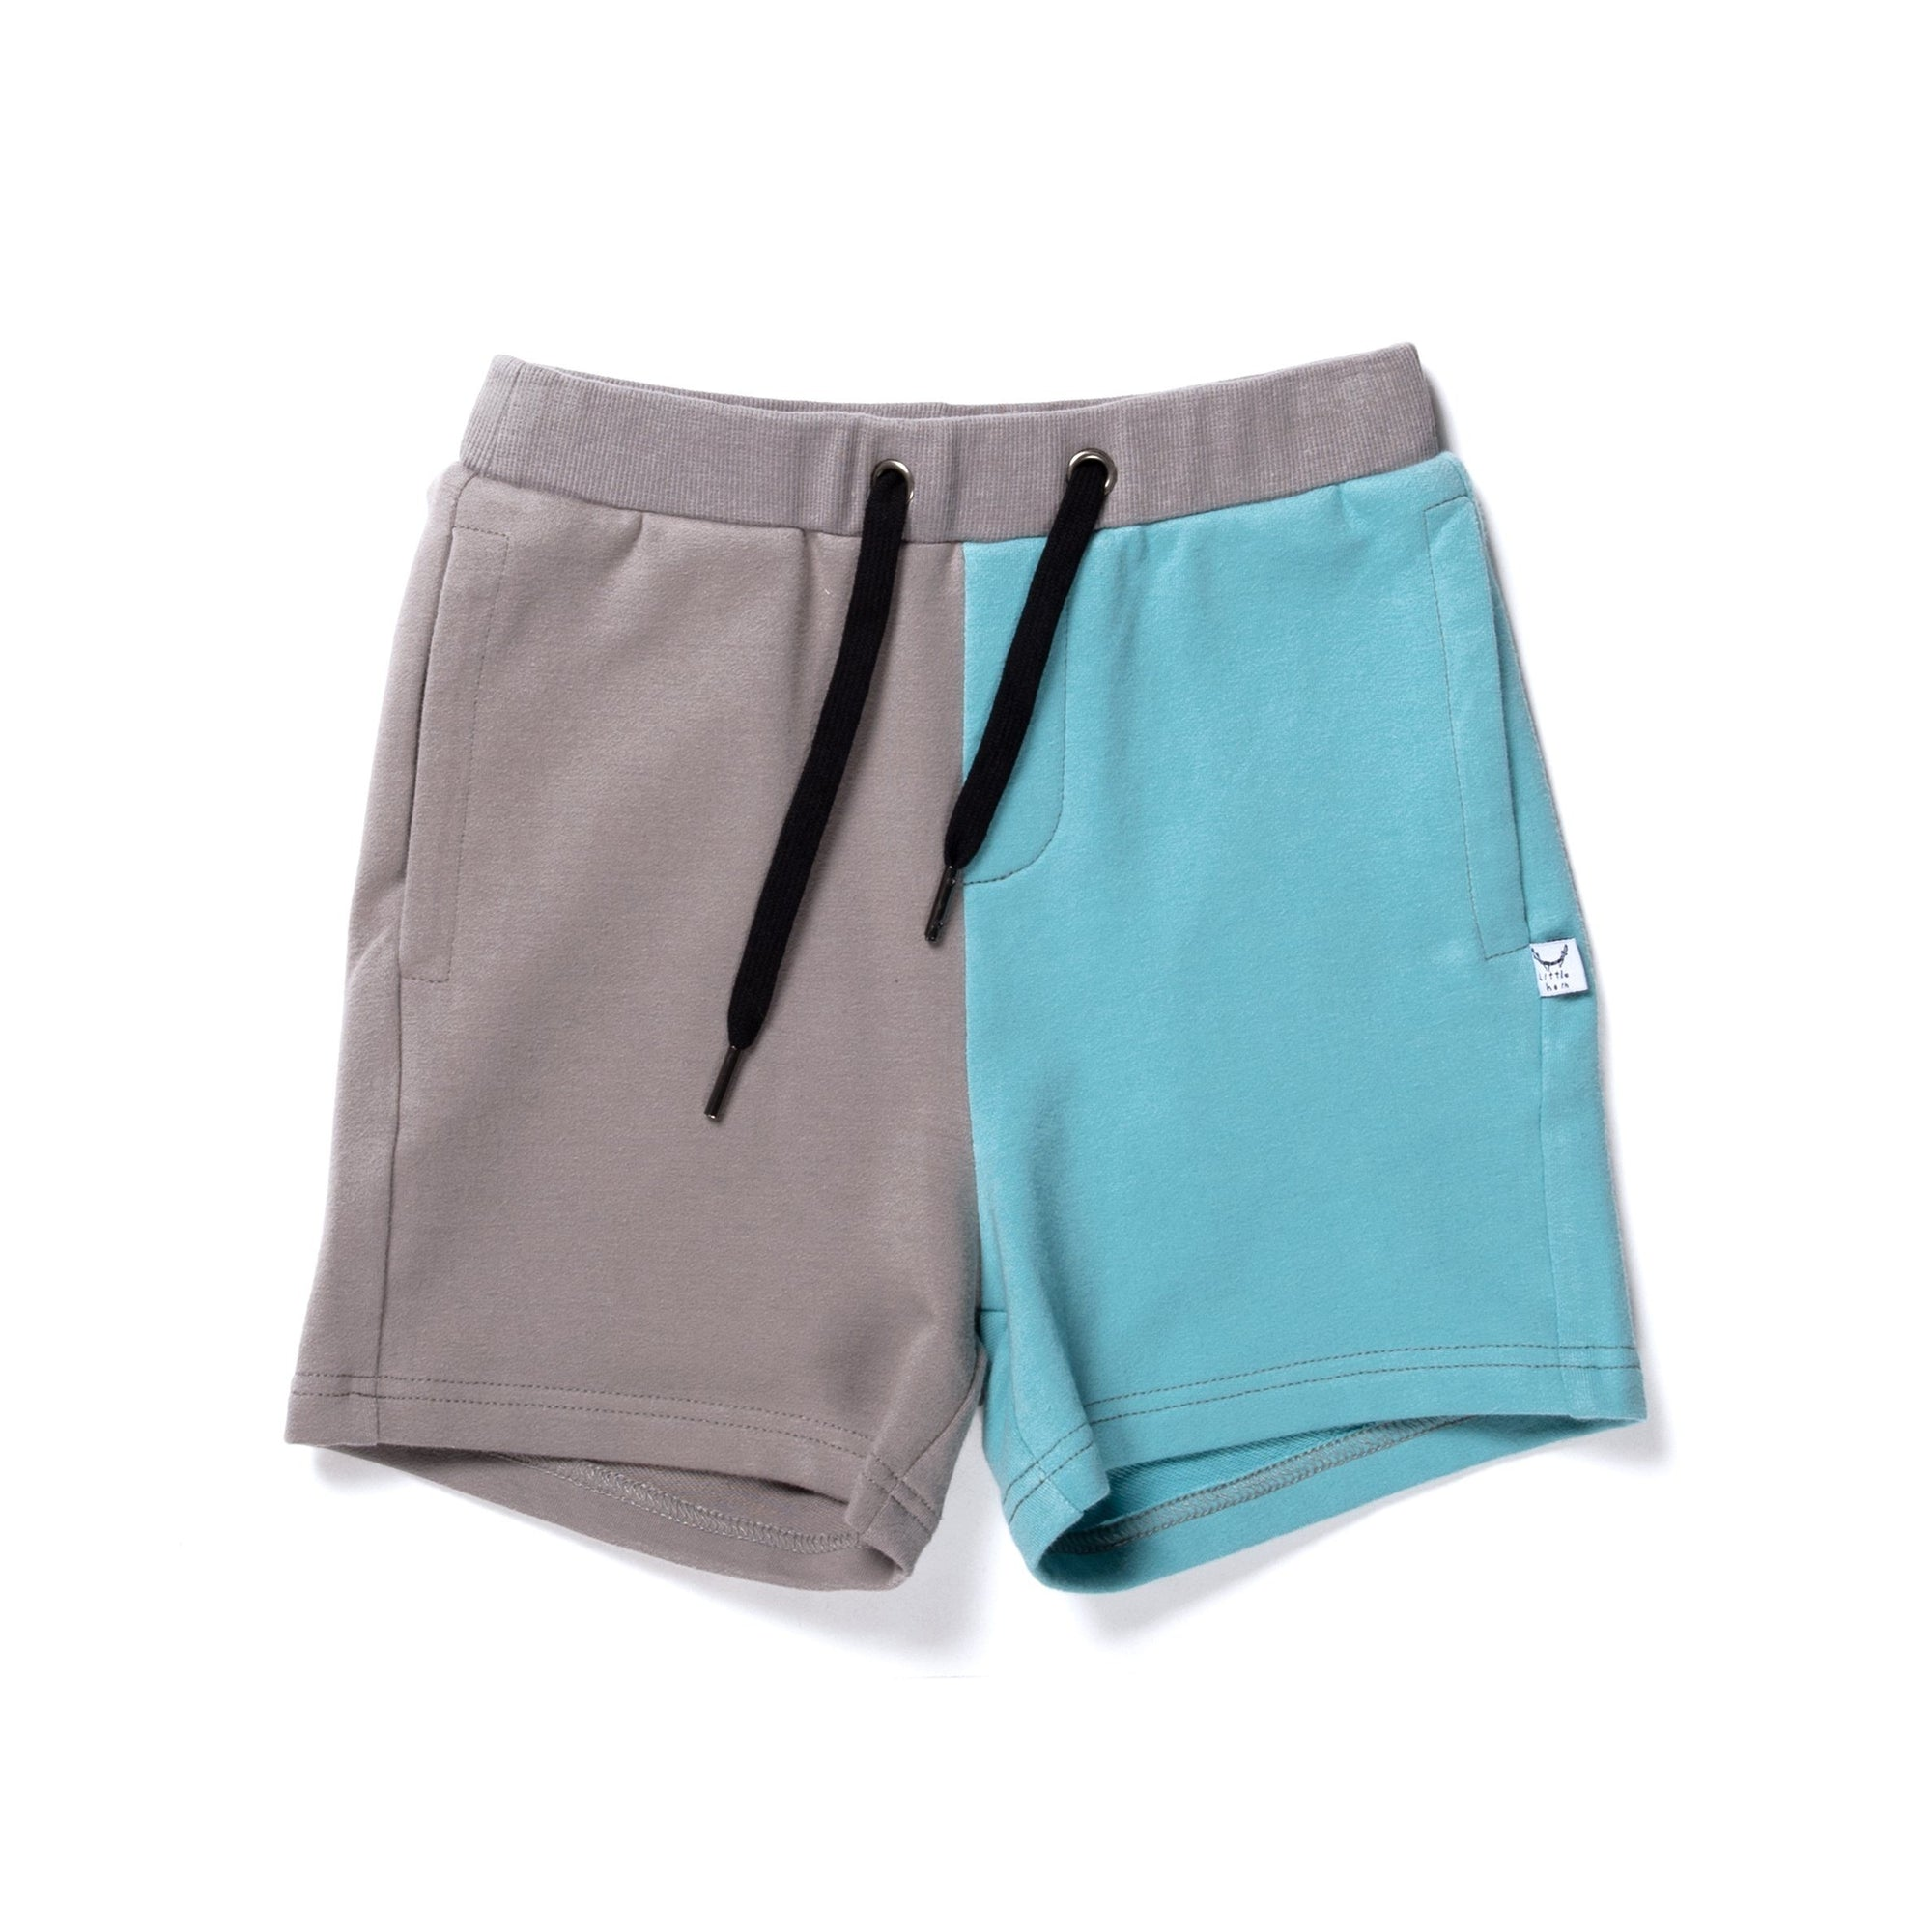 Branded Sweat Short (Slate/Aqua)